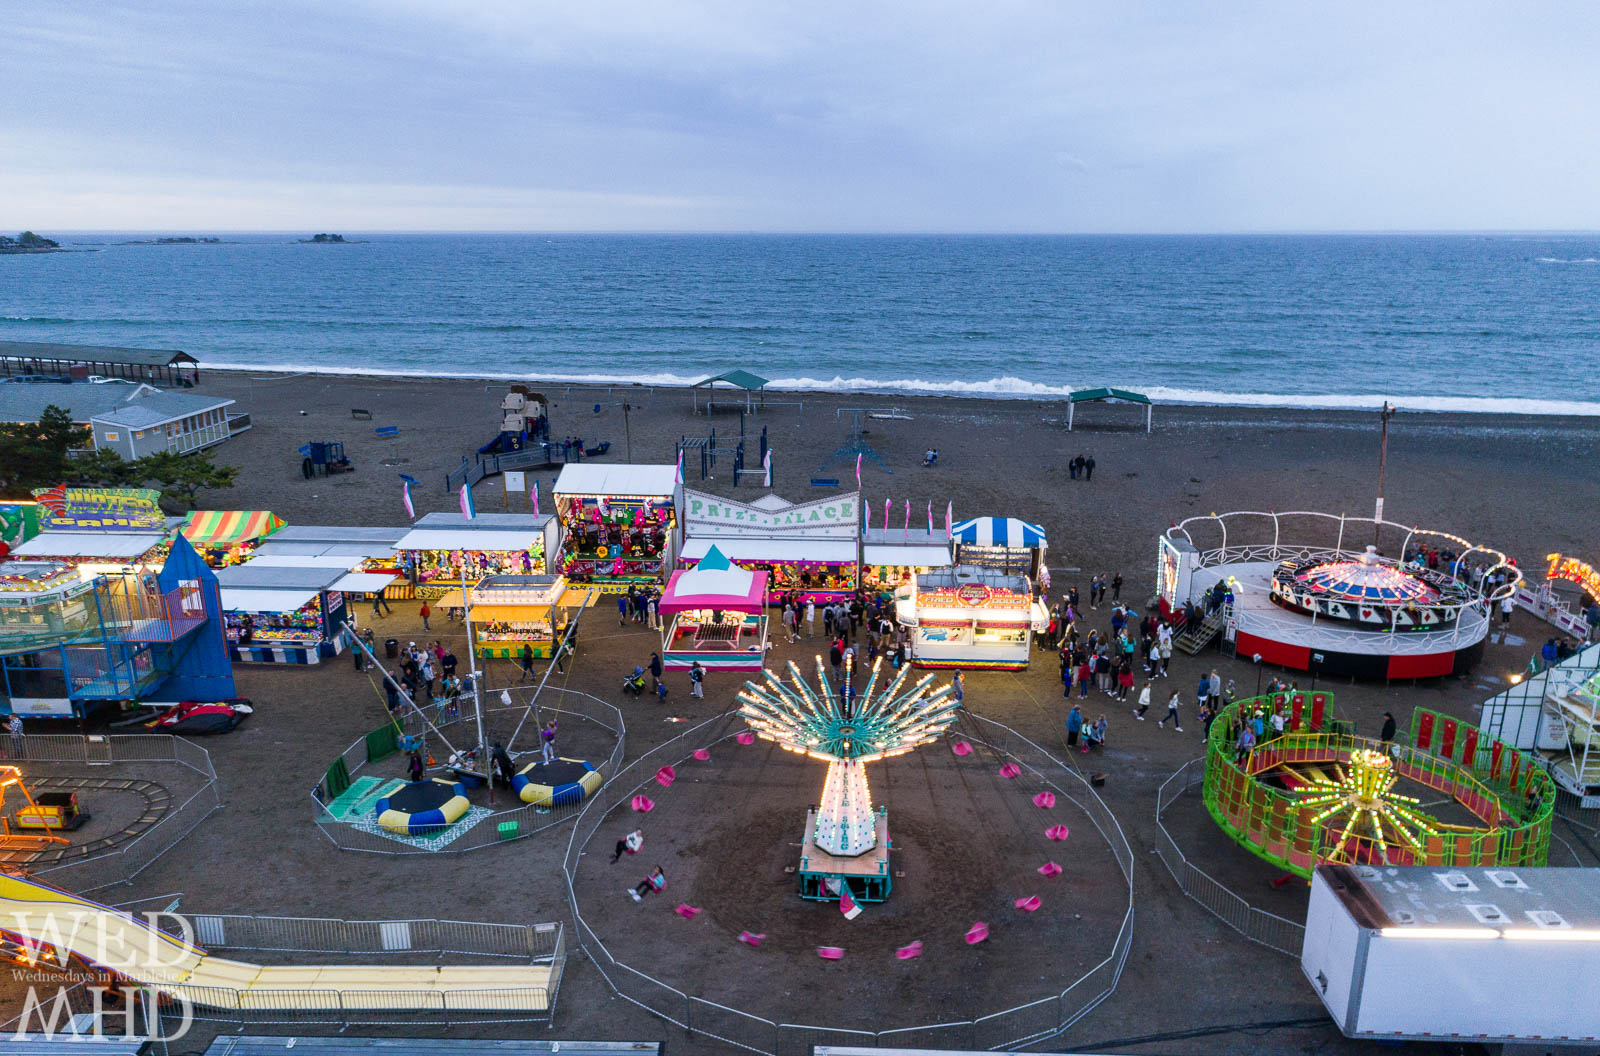 The annual Marblehead carnival by the sea is captured in full swing as kids of all ages explore rides and games along Devereux Beach